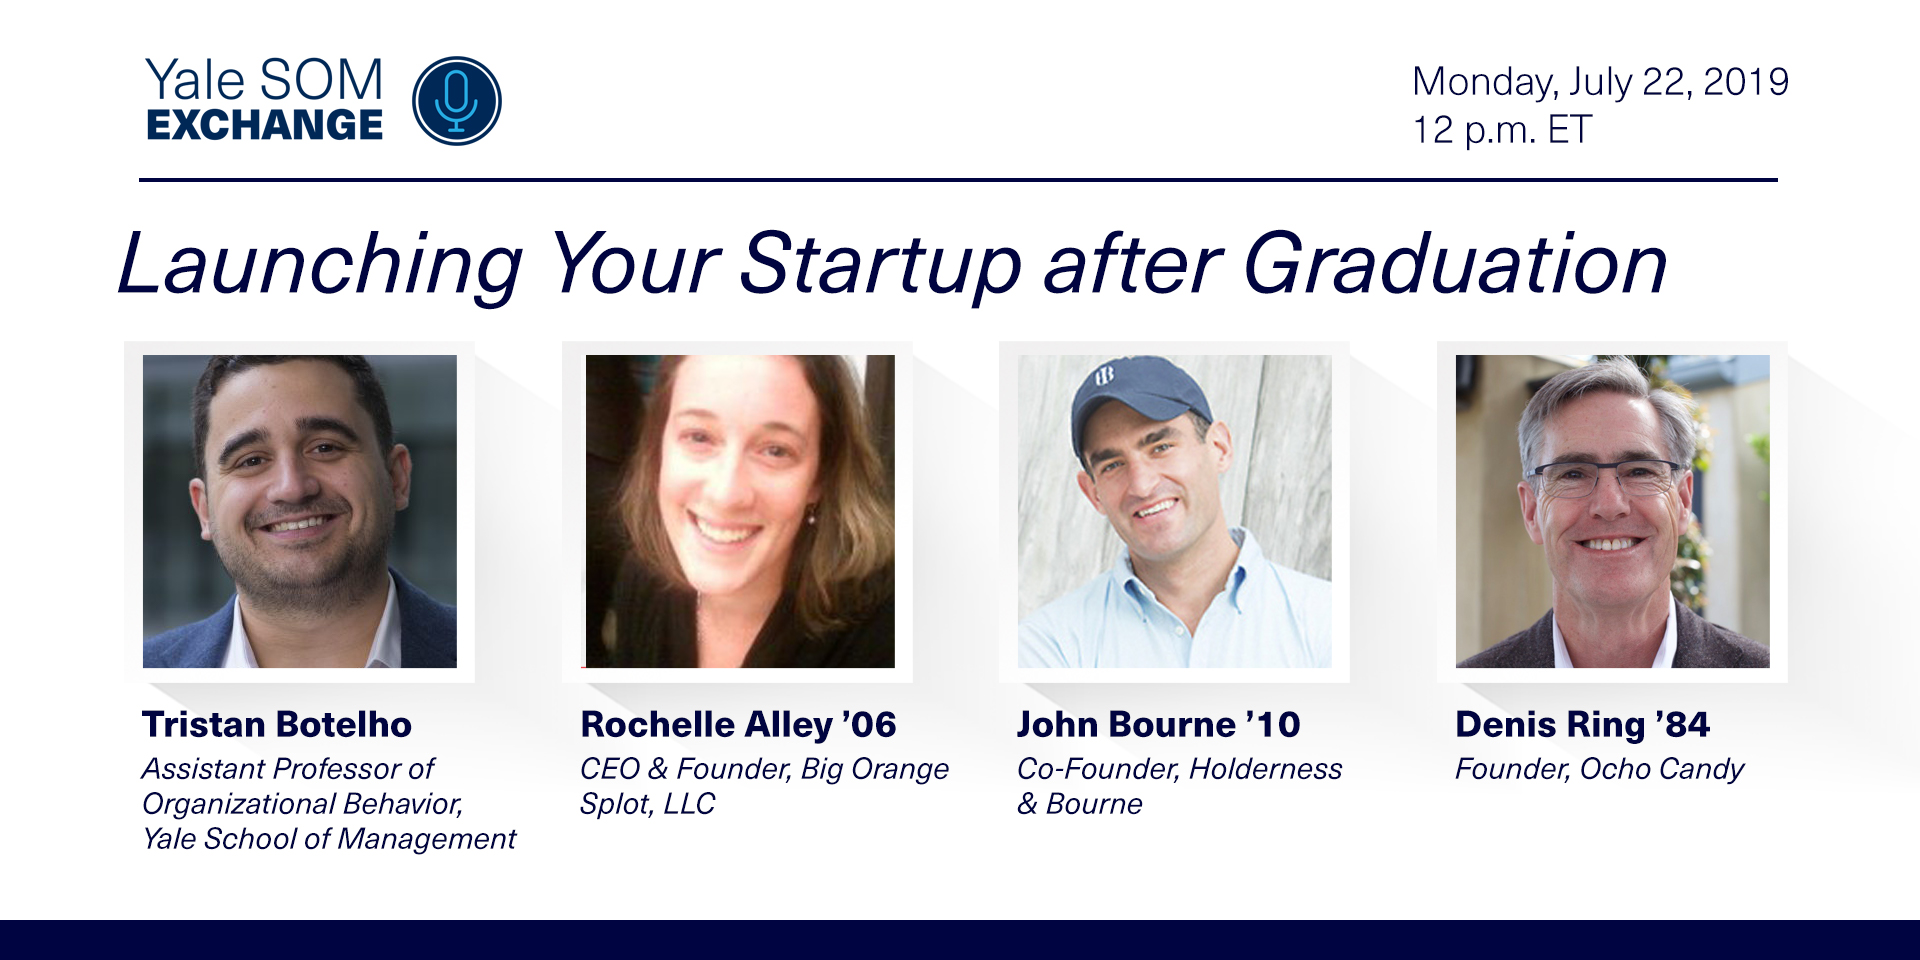 [WEBINAR] Launching Your Startup after Graduation